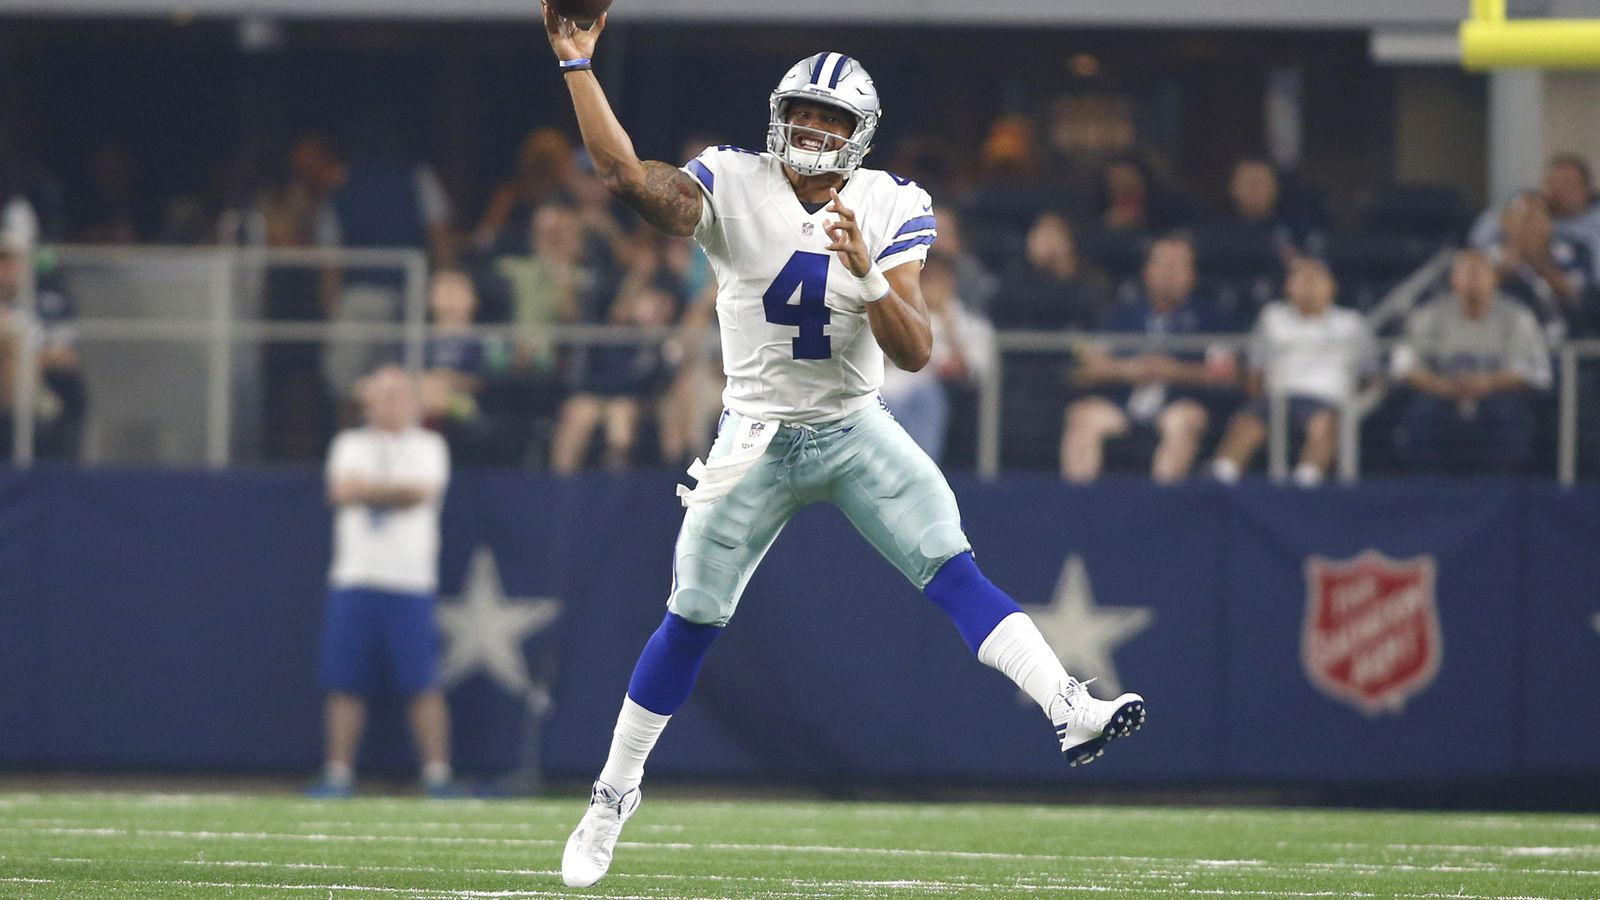 Cowboys Headlines - DAL Vs MIA in Review: Players Looking to Take the Next Step in Seattle